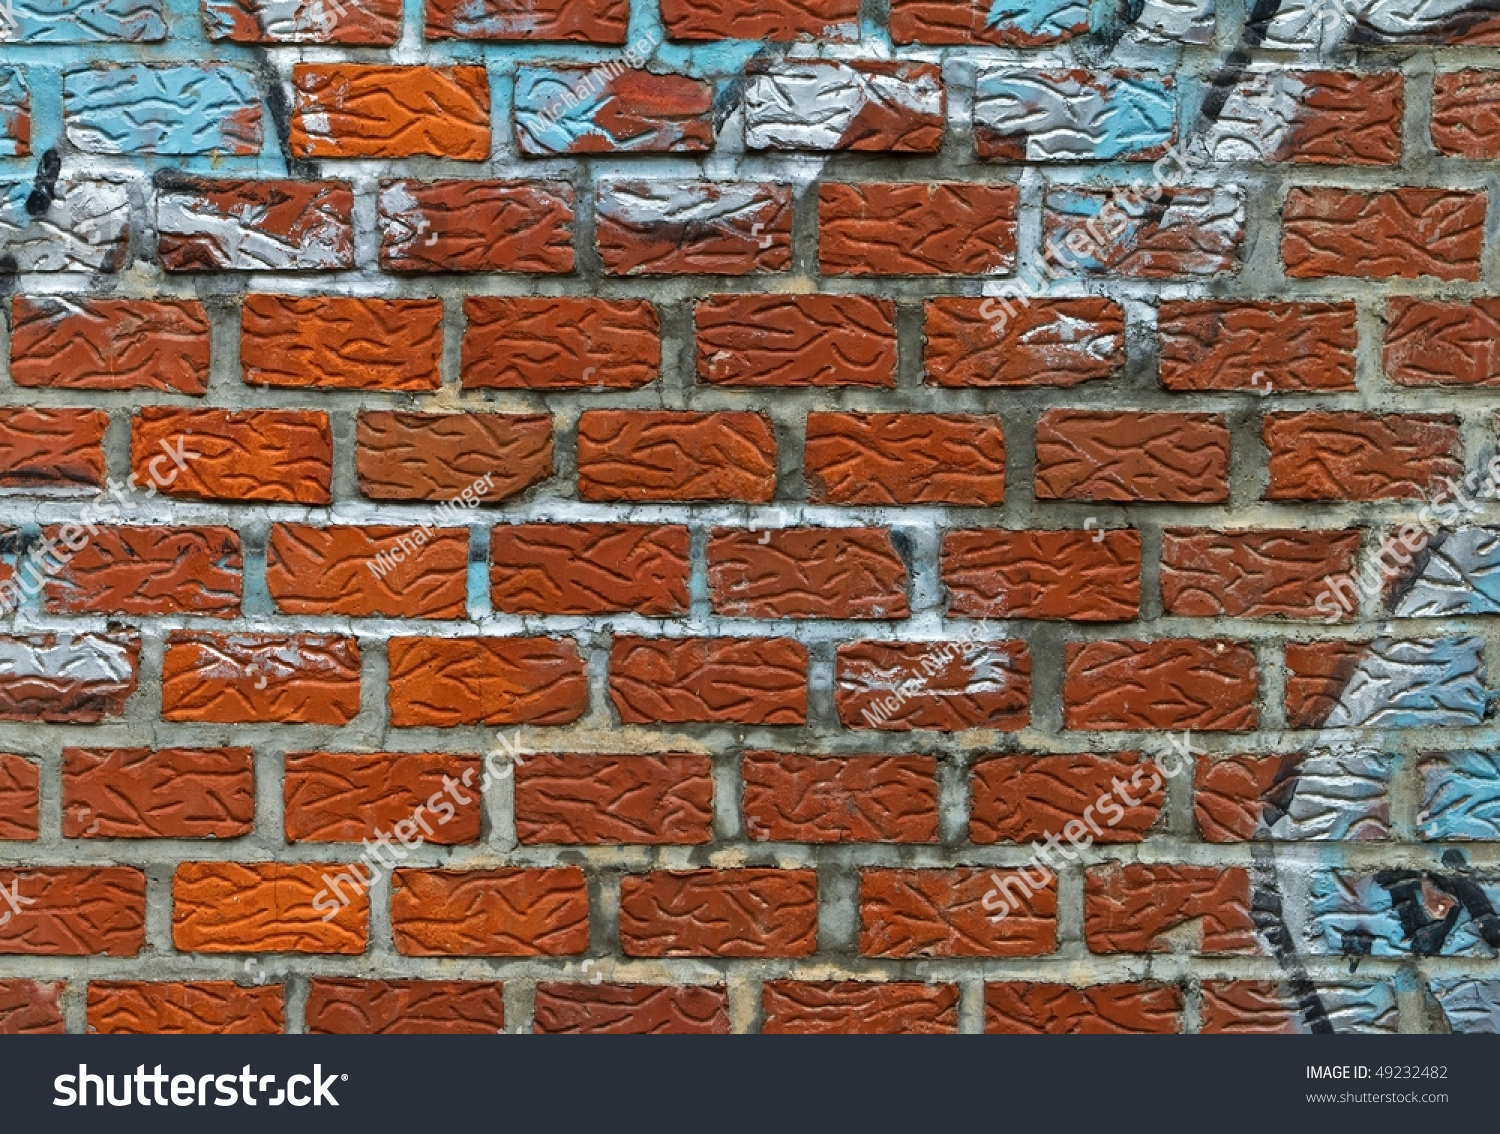 How To Spray Paint A Brick Wall